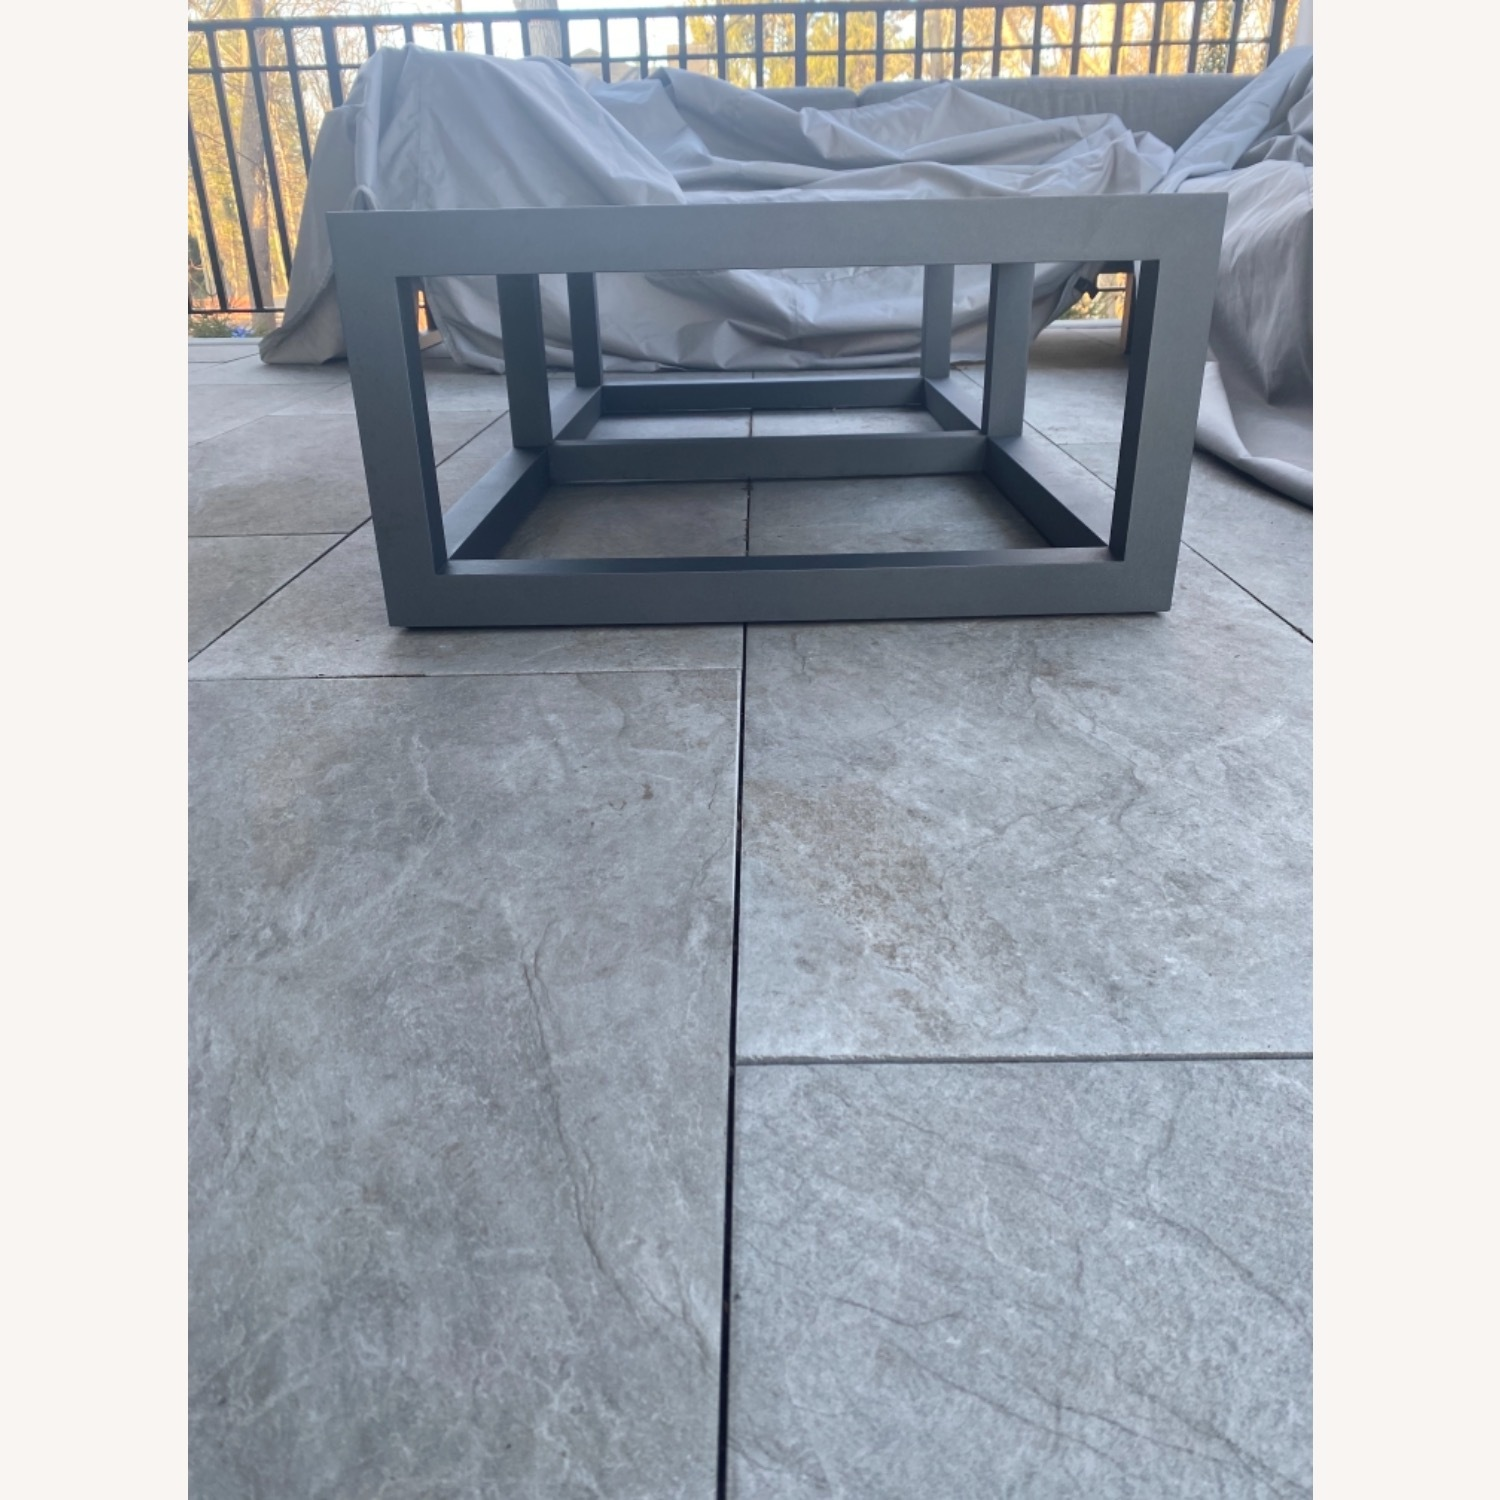 Restoration Hardware Outdoor Coffee Table - image-3